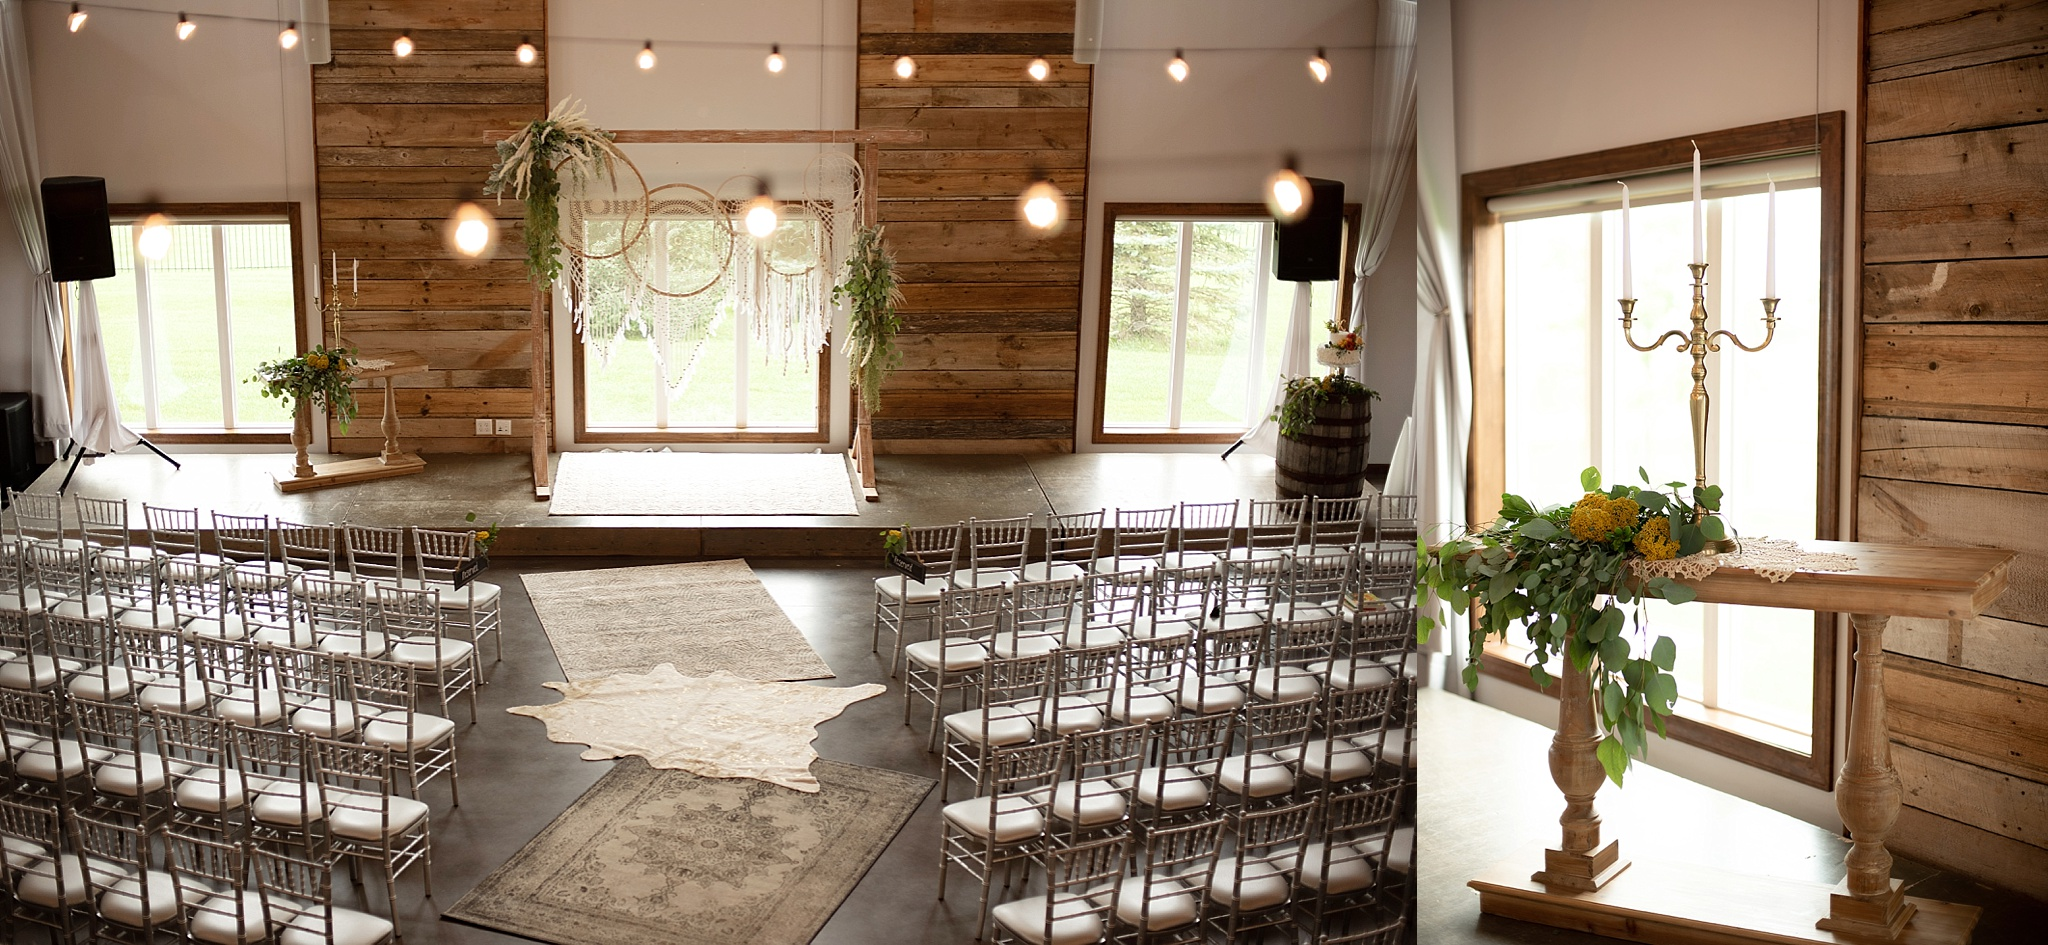 blue haven barn sioux falls south dakota modern antique wedding day